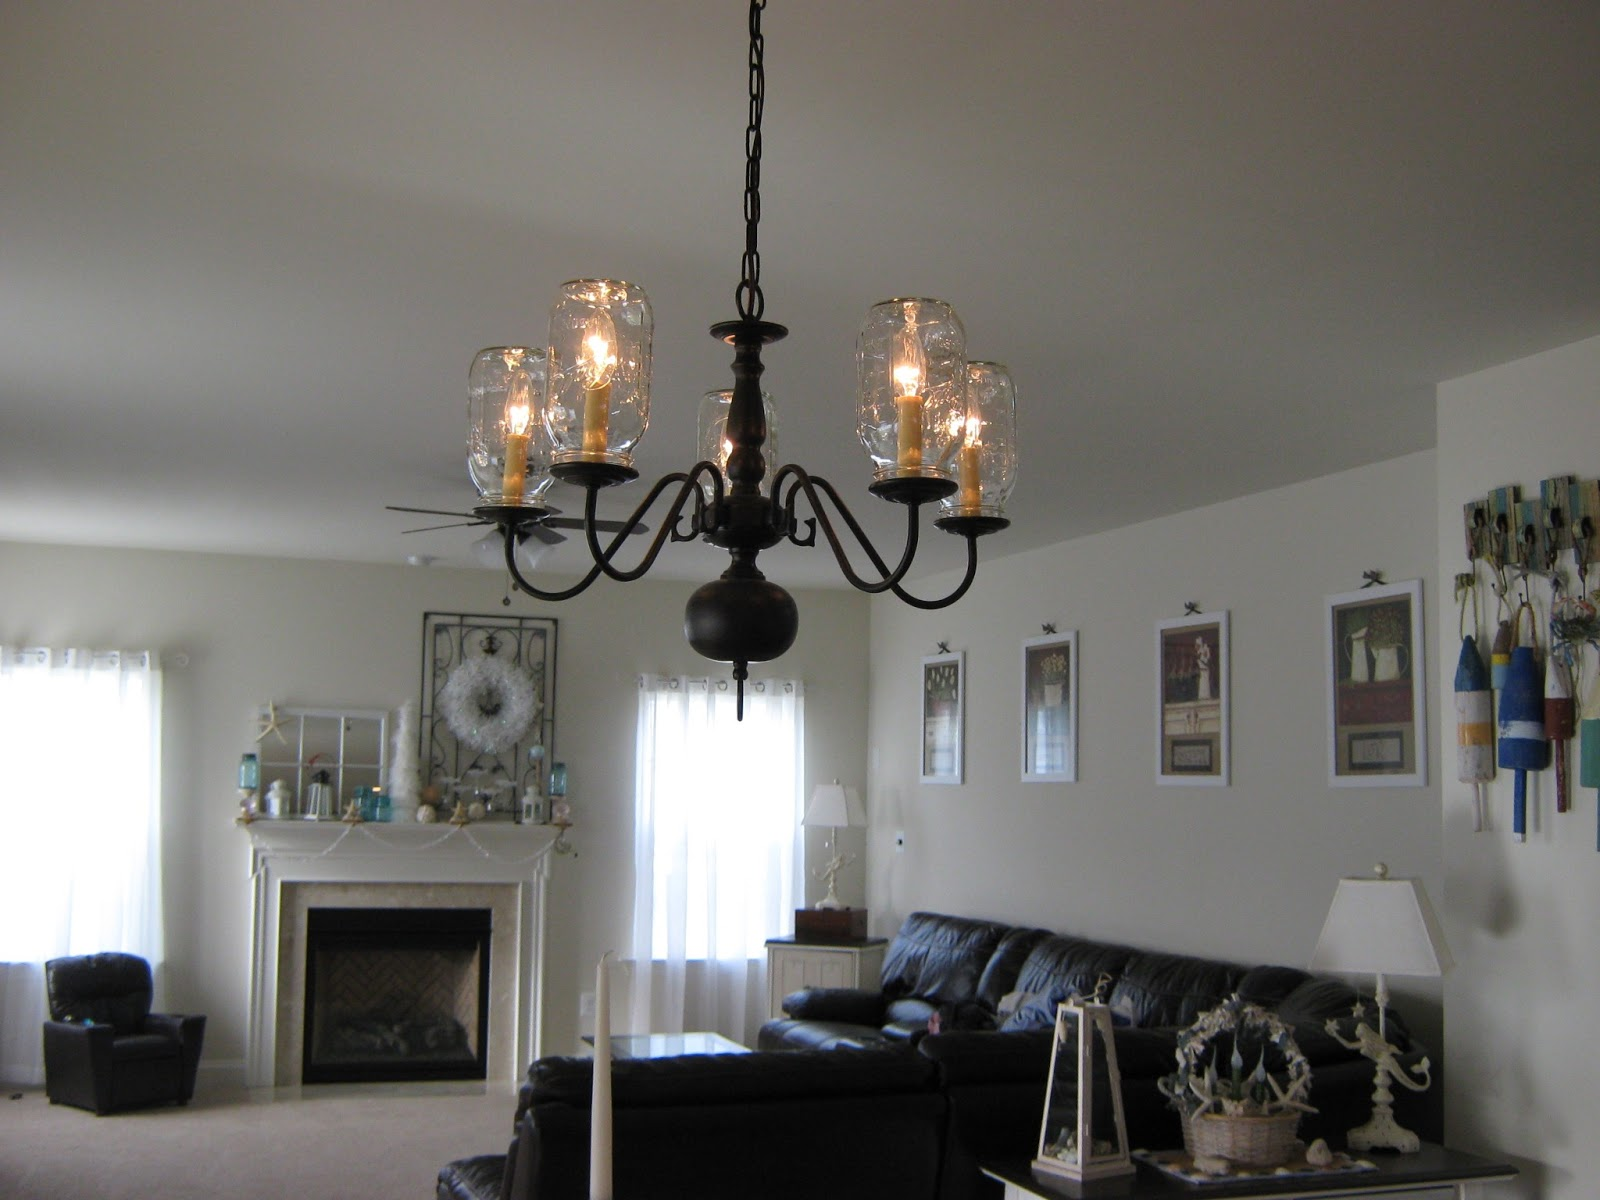 Pottery Barn Chandelier at Home and Interior Design Ideas